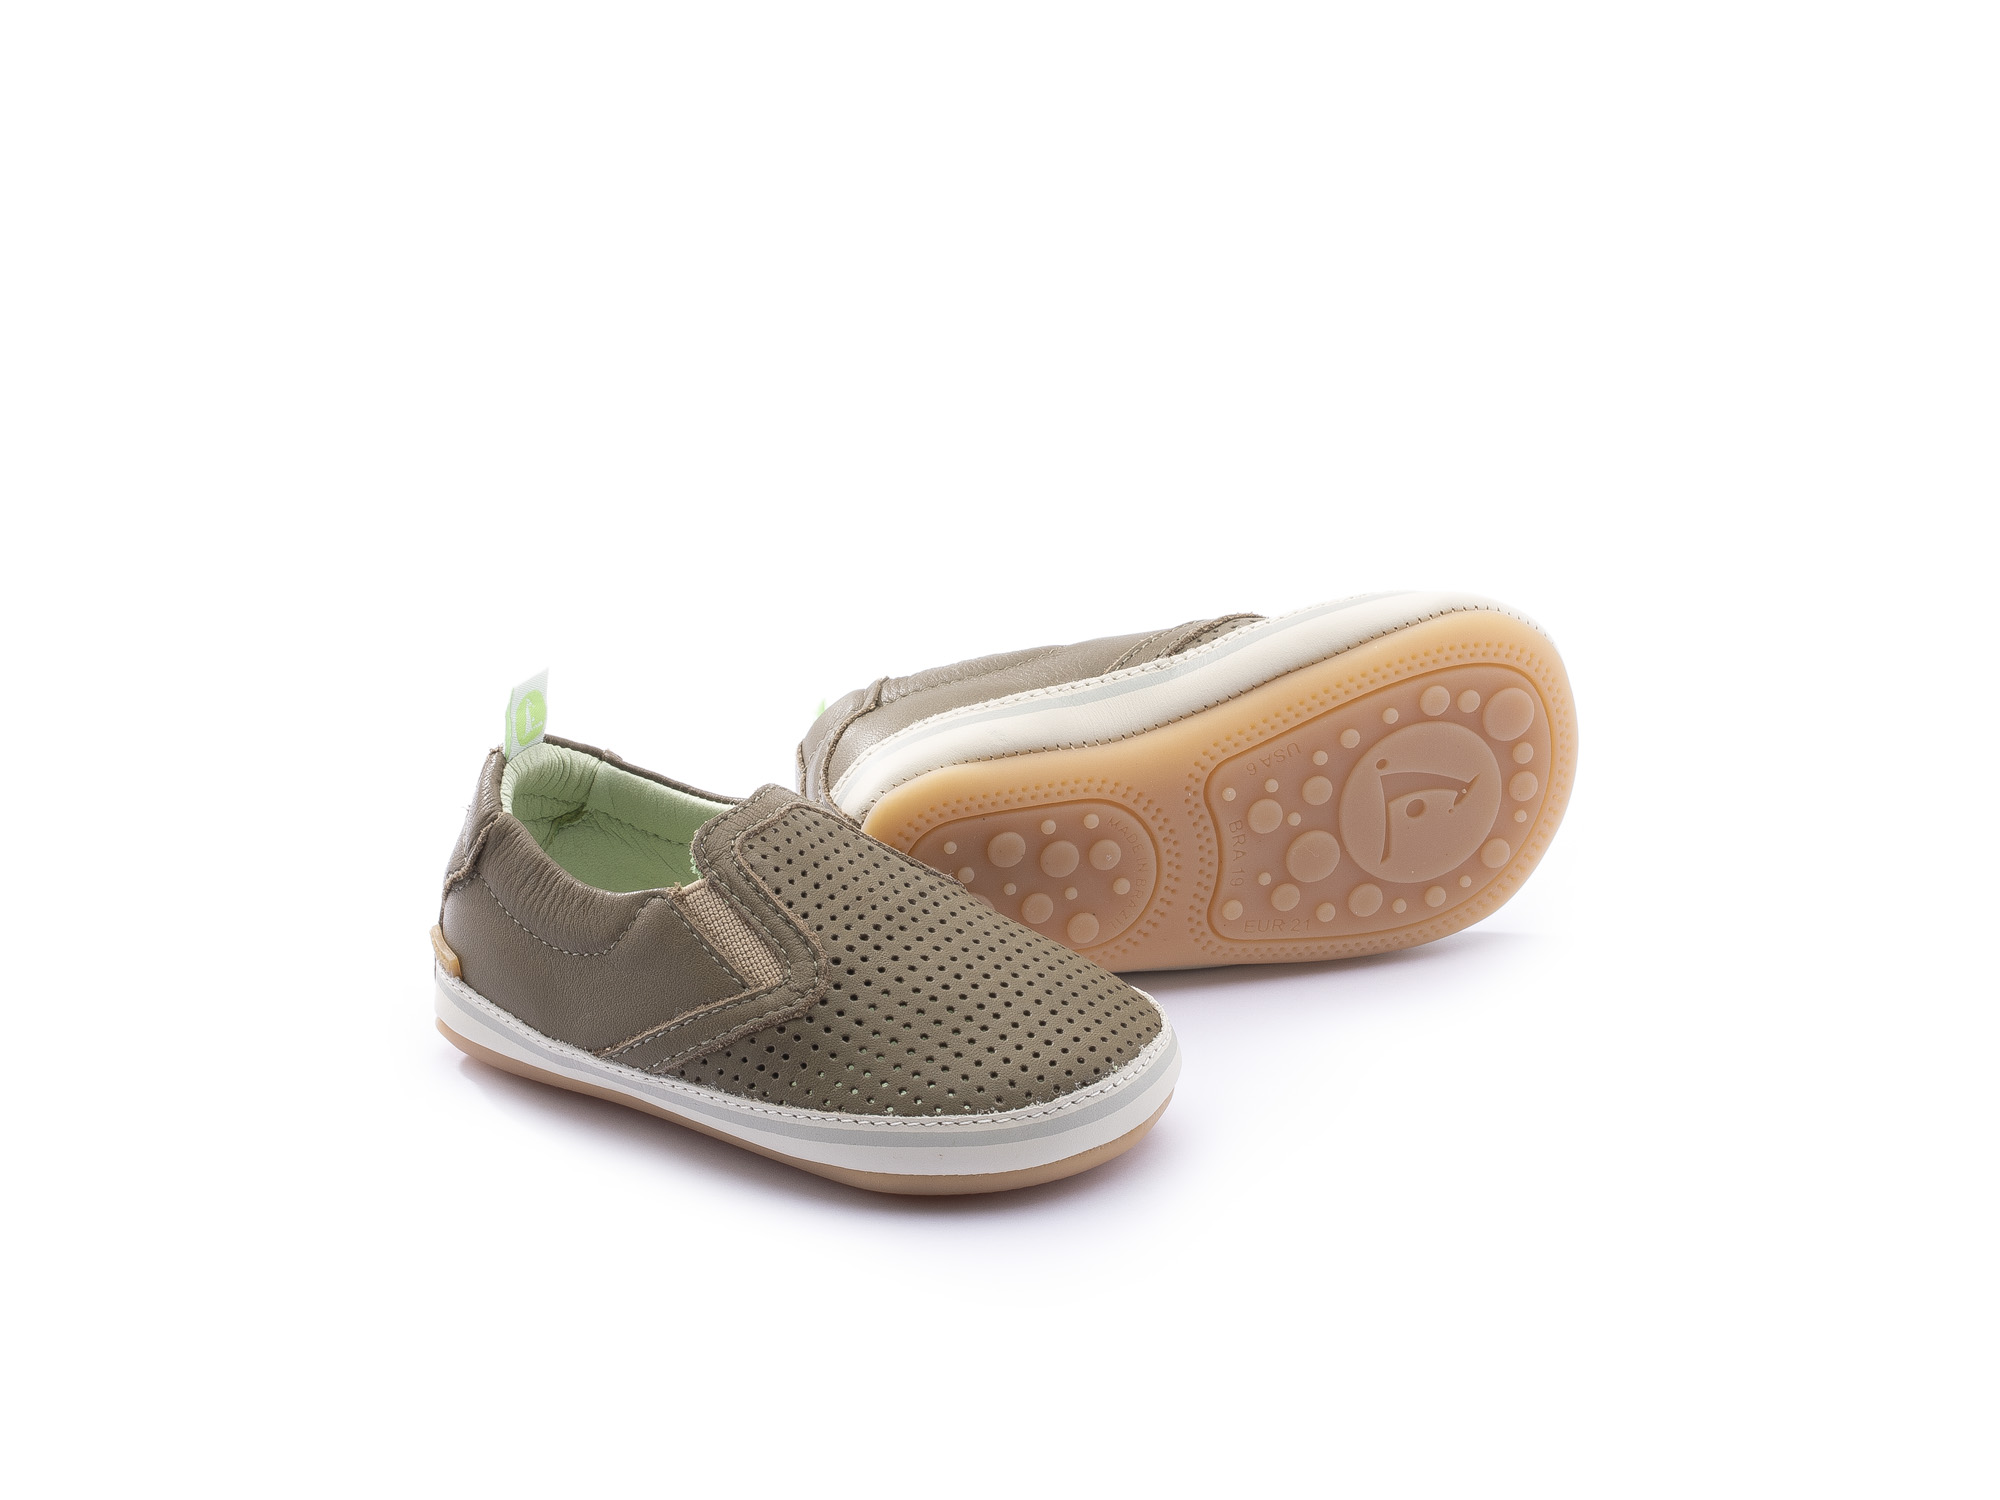 Sneaker Casual Woody Mineral Green Holes/ Mineral Green Baby 0 à 2 anos - 0